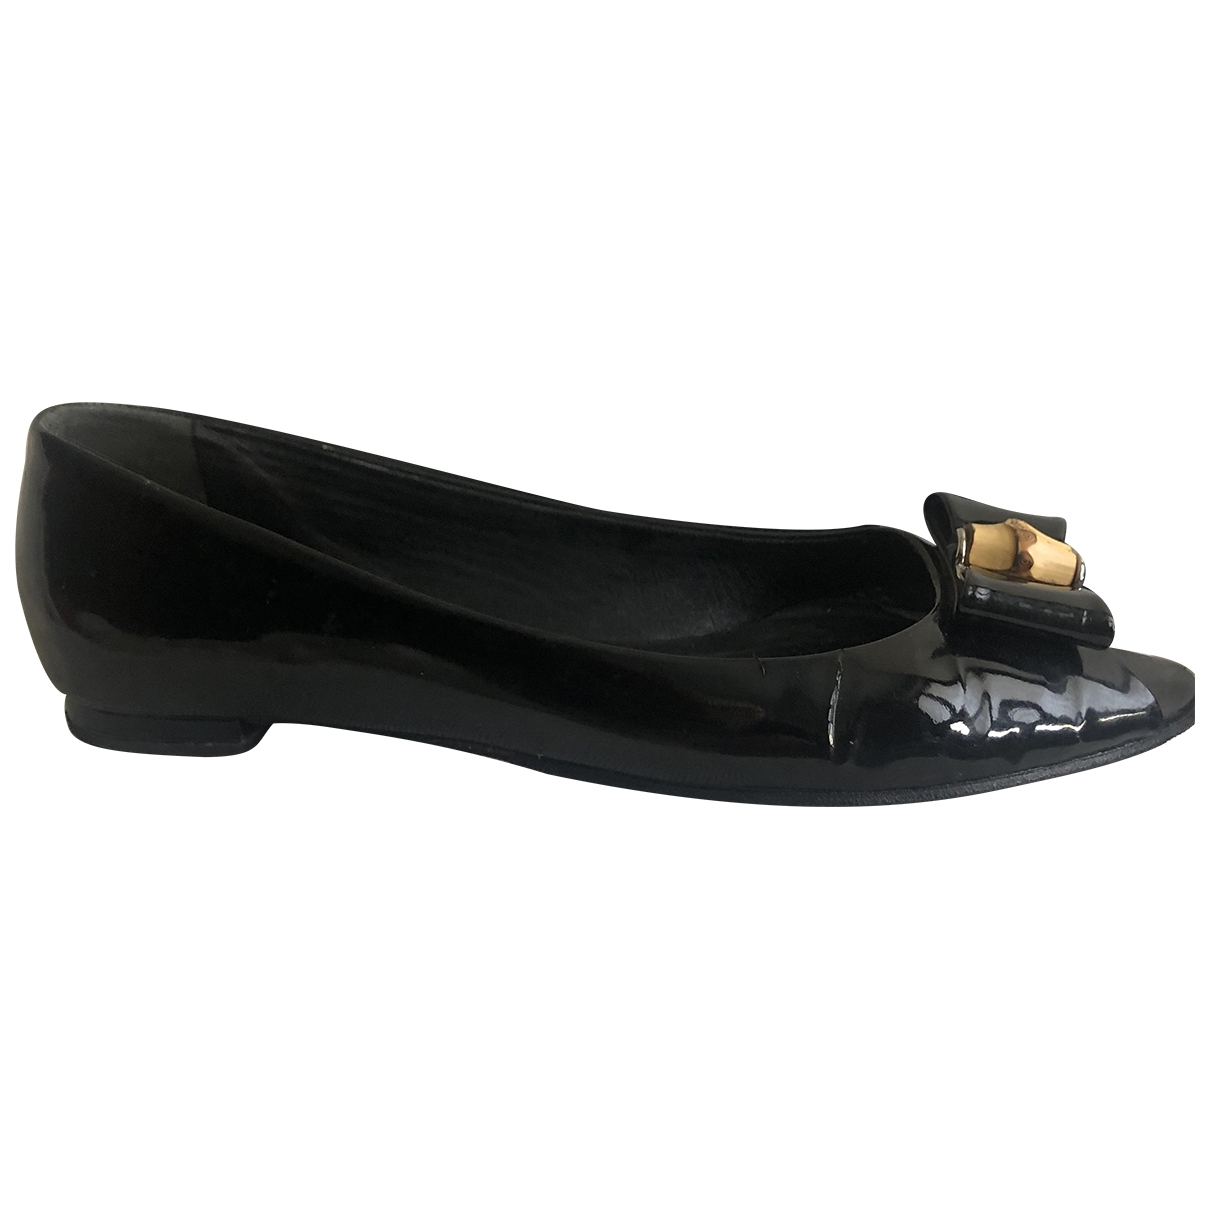 Gucci \N Black Patent leather Ballet flats for Women 39 IT